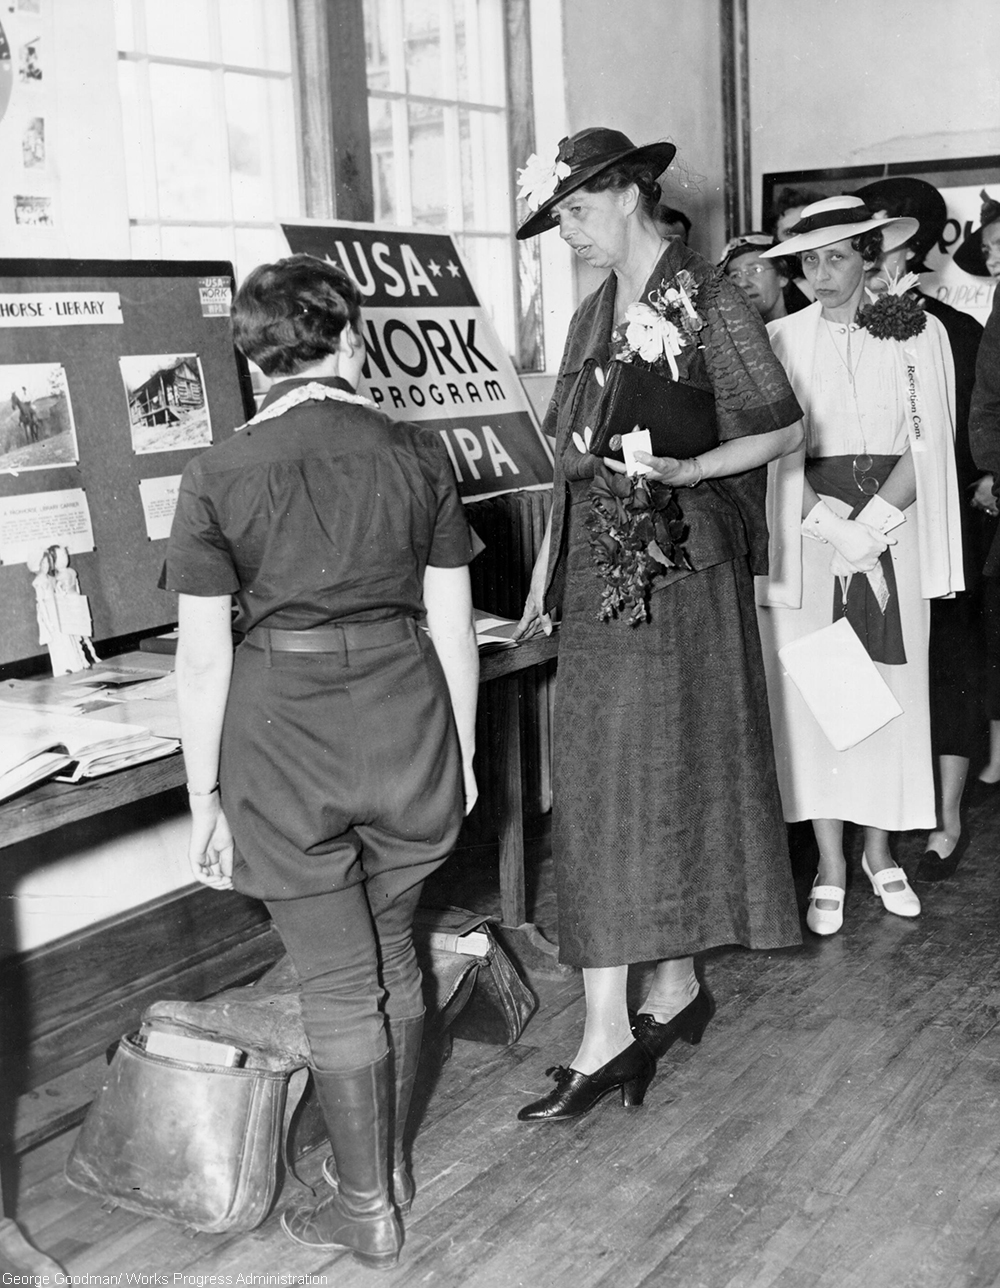 Eleanor Roosevelt visiting the Packhorse Library in West Liberty, KY, May 24, 1937. Mrs. Roosevelt chats with a Pack Horse Librarian of the Kentucky Mountains at the dedication exercises of the West Liberty High School